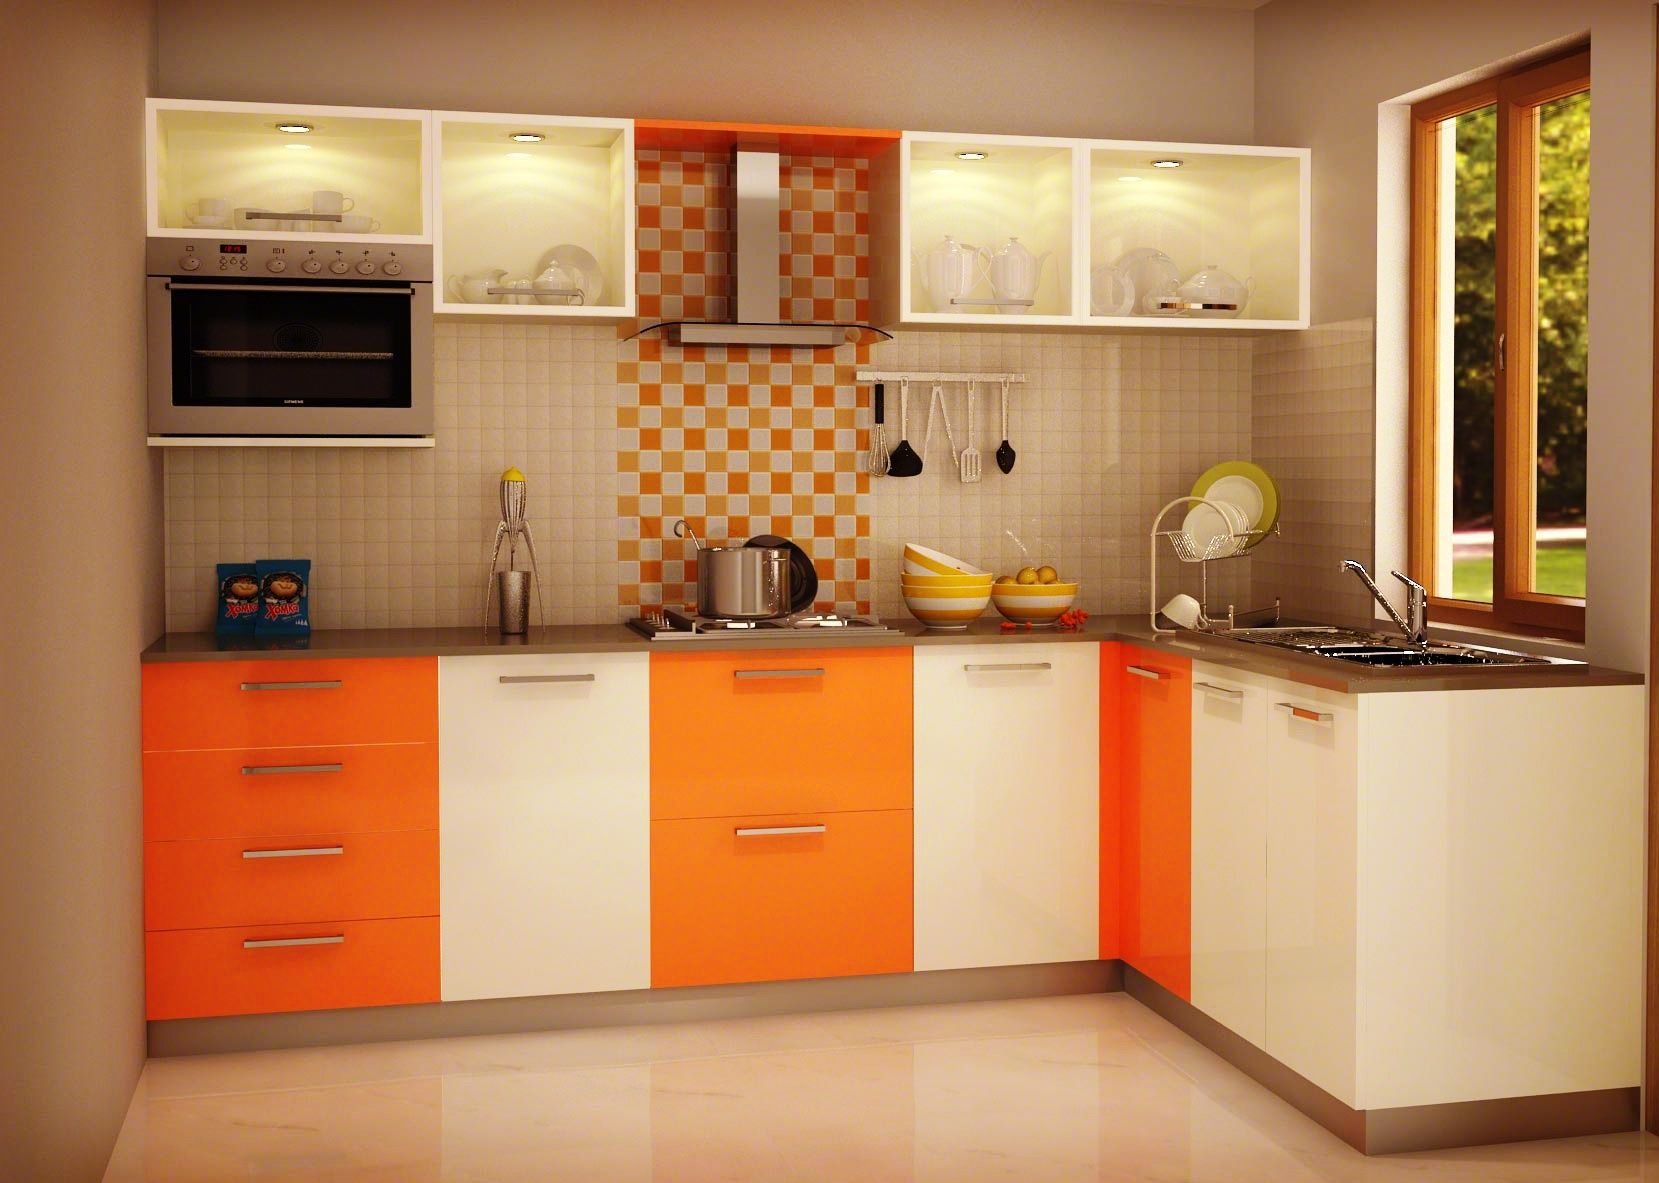 Kitchen Painting Ideas Kitchen Furniture Design Kitchen Room Design Kitchen Design Small